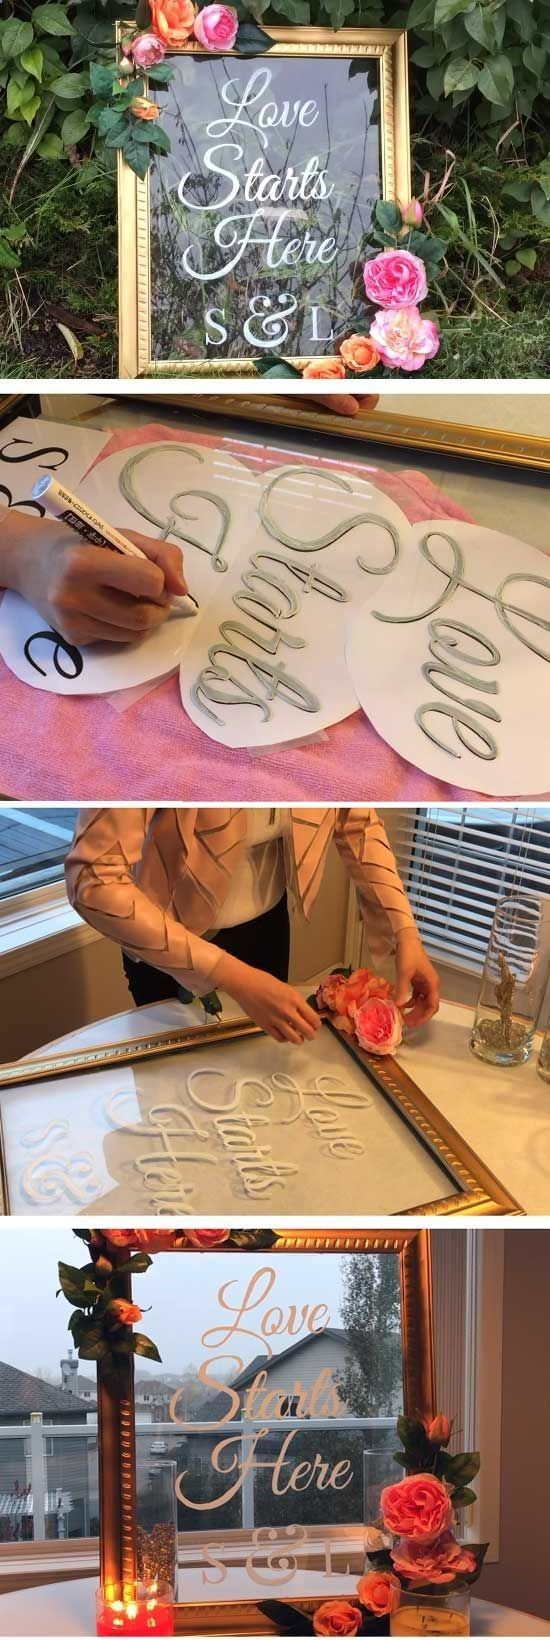 38 Cheap Wedding Ideas On A Small Budget #weddingphotography